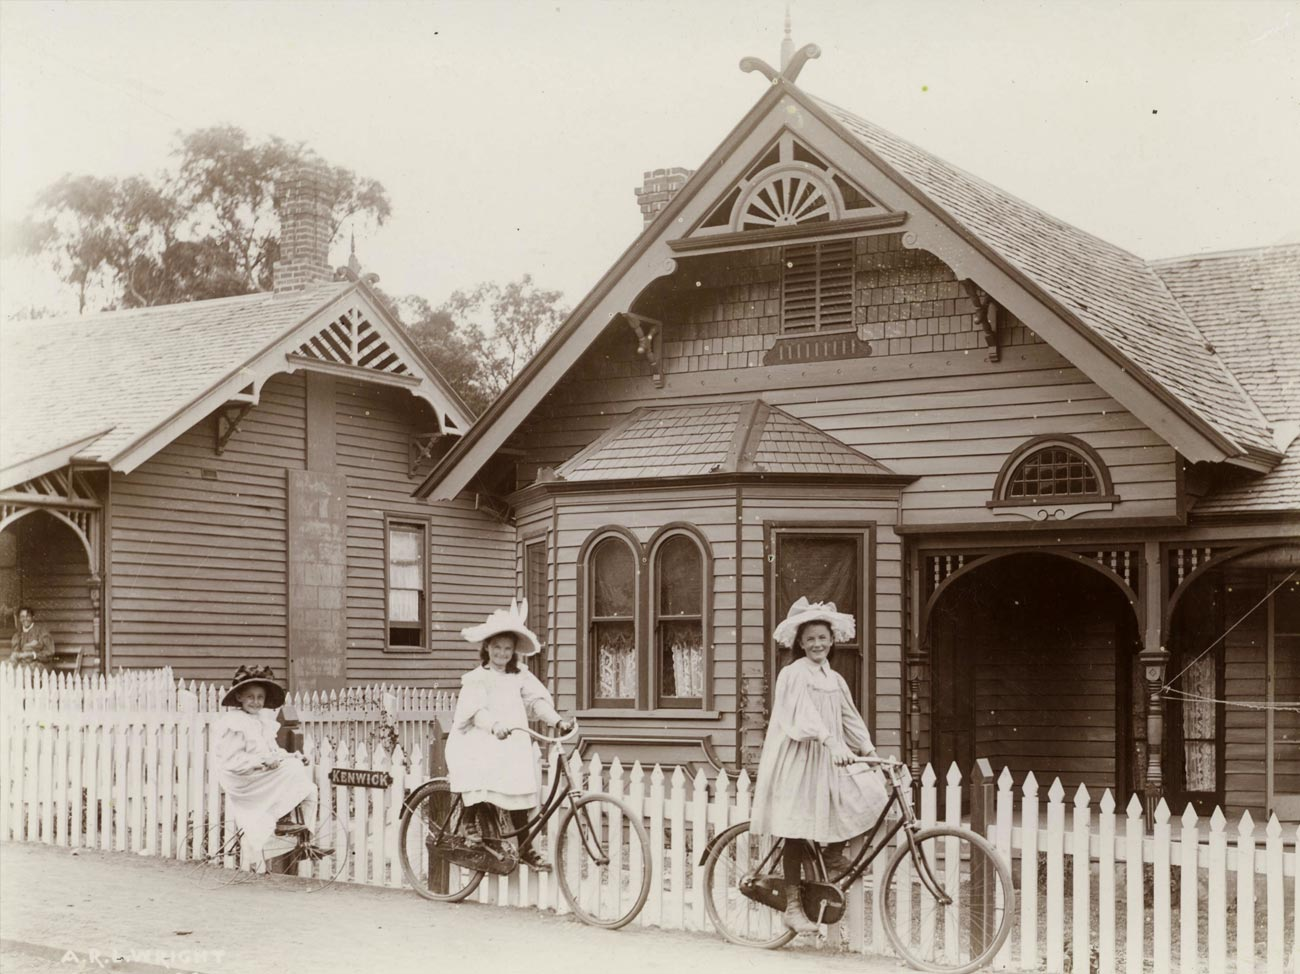 Three girls from the early 20th century playing in front of a federation style cottage